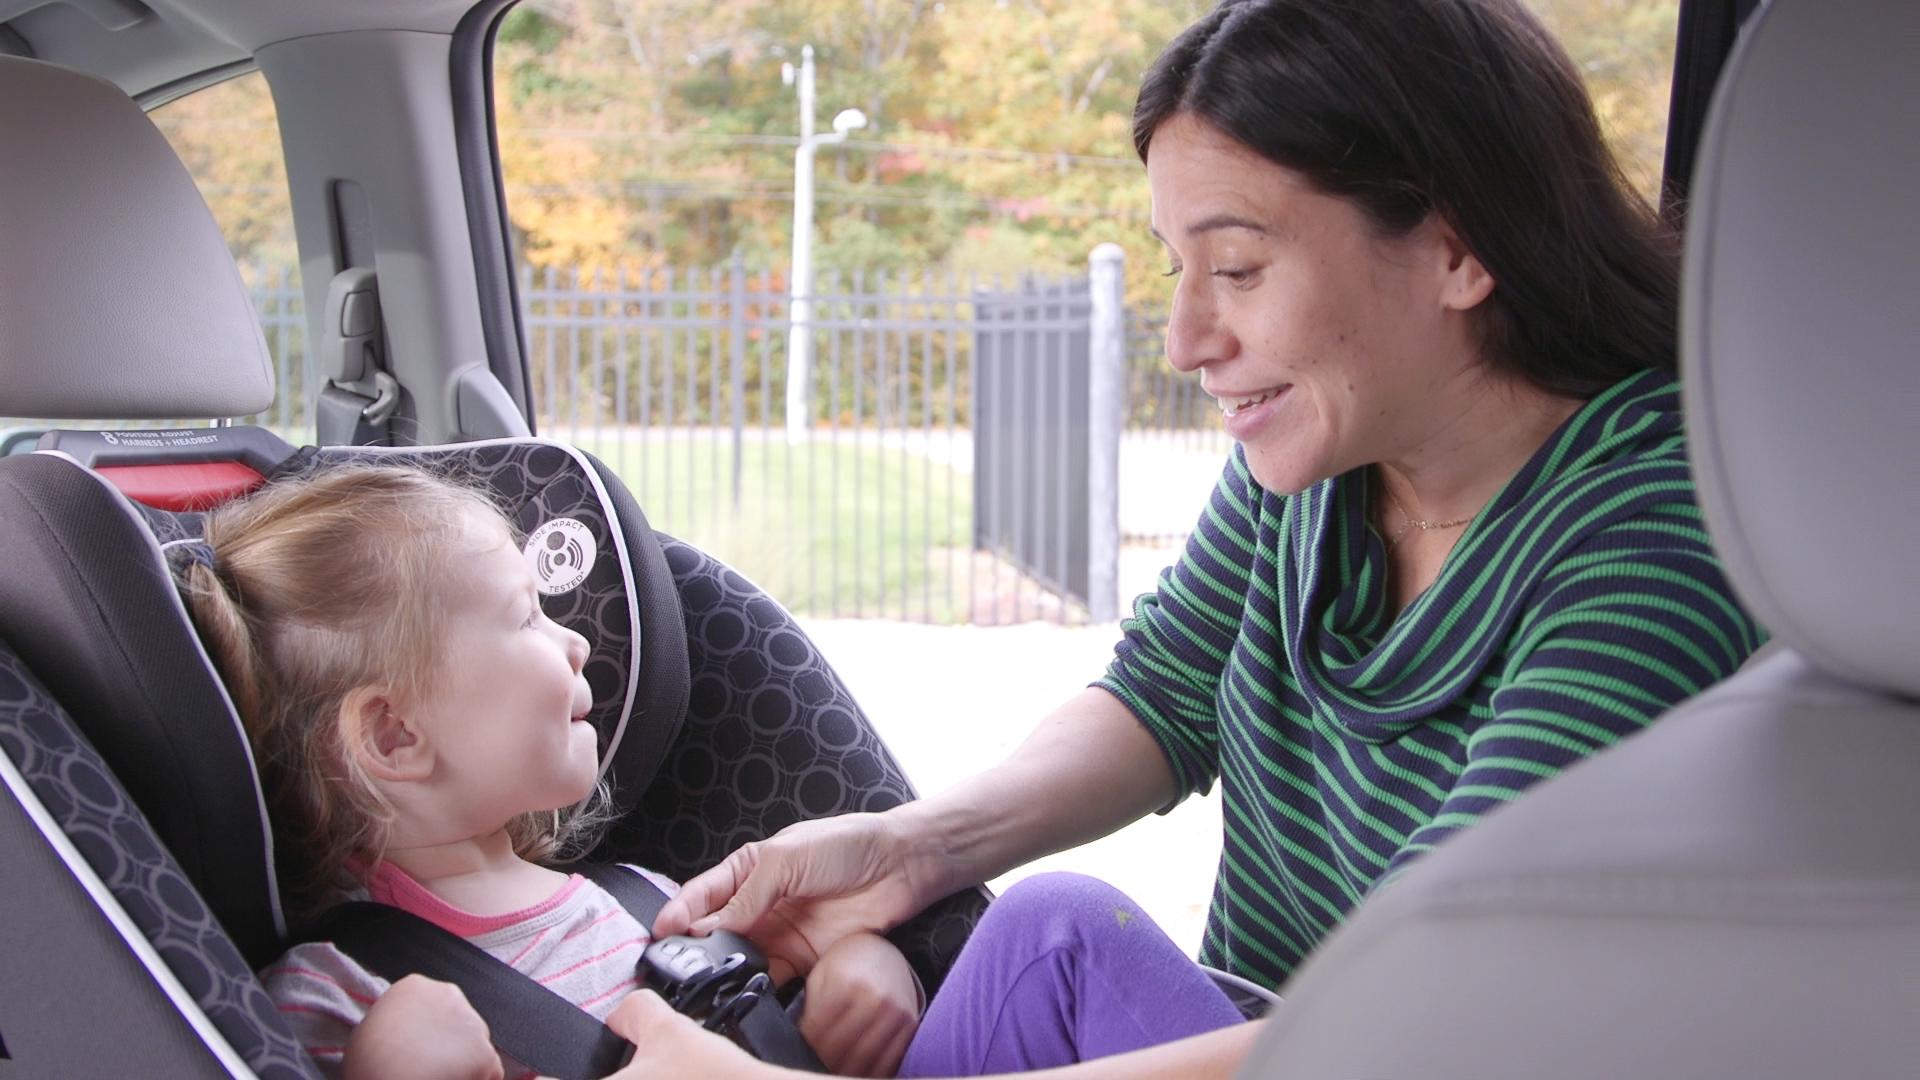 sc 1 st  Consumer Reports & Buy a Convertible Car Seat Sooner Rather Than Later - Consumer Reports